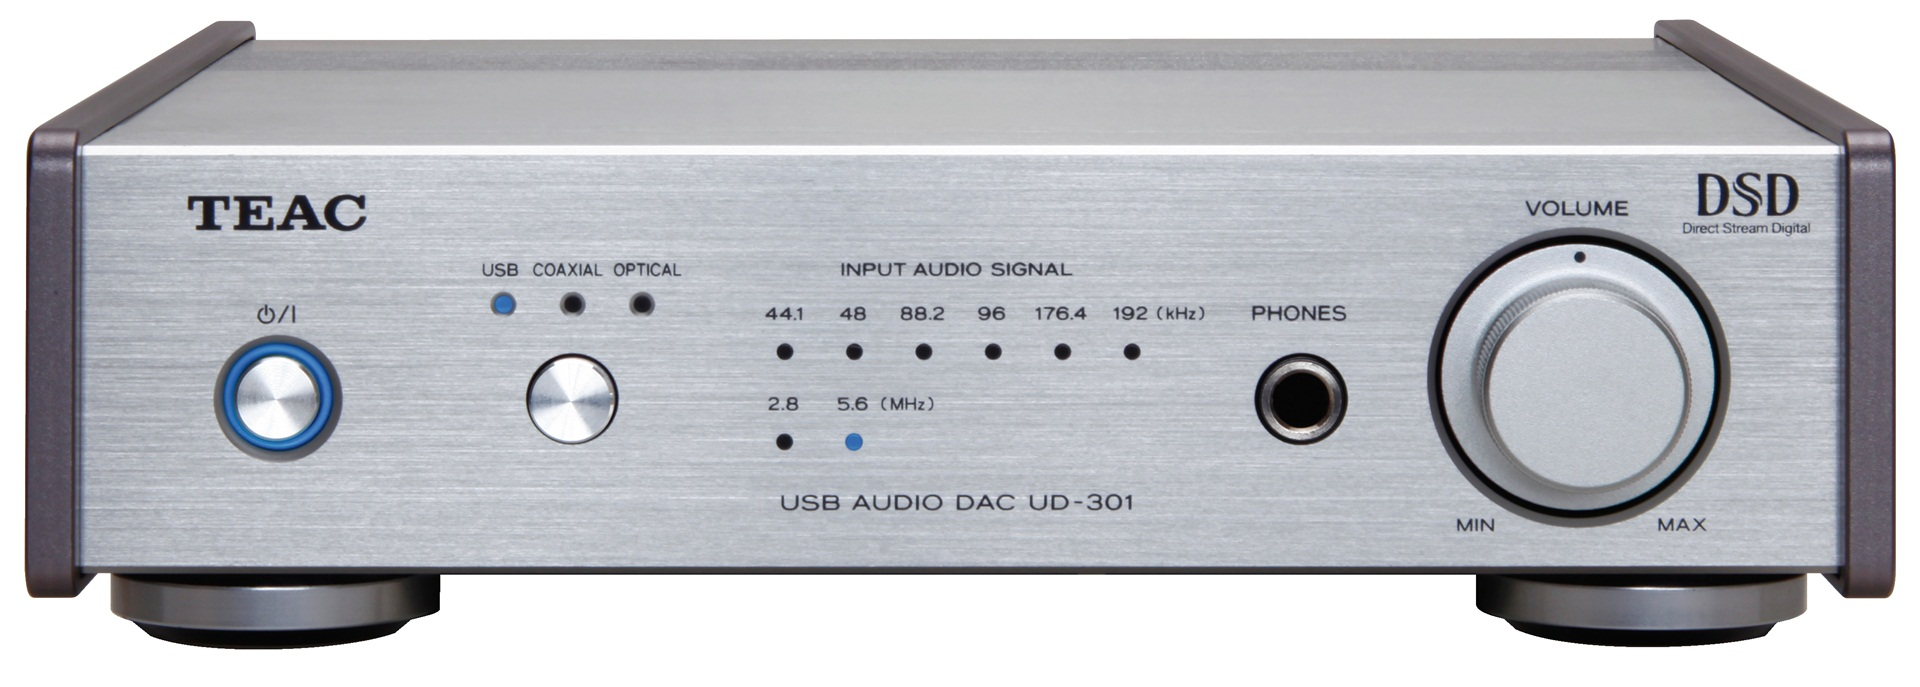 TEAC Headphone Amplifier UD-301